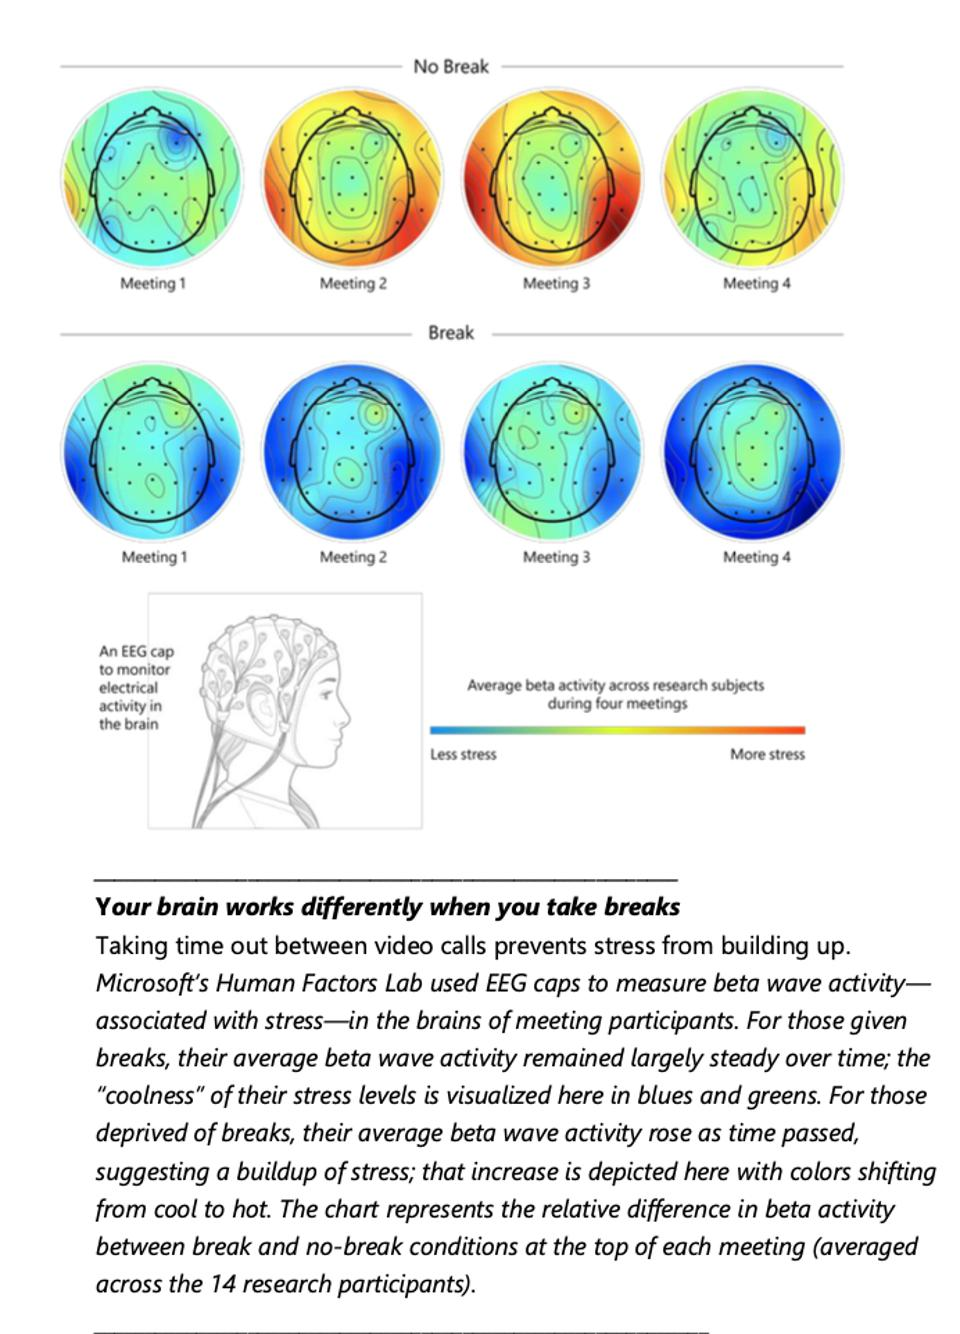 Your brain works differently when you take breaks.